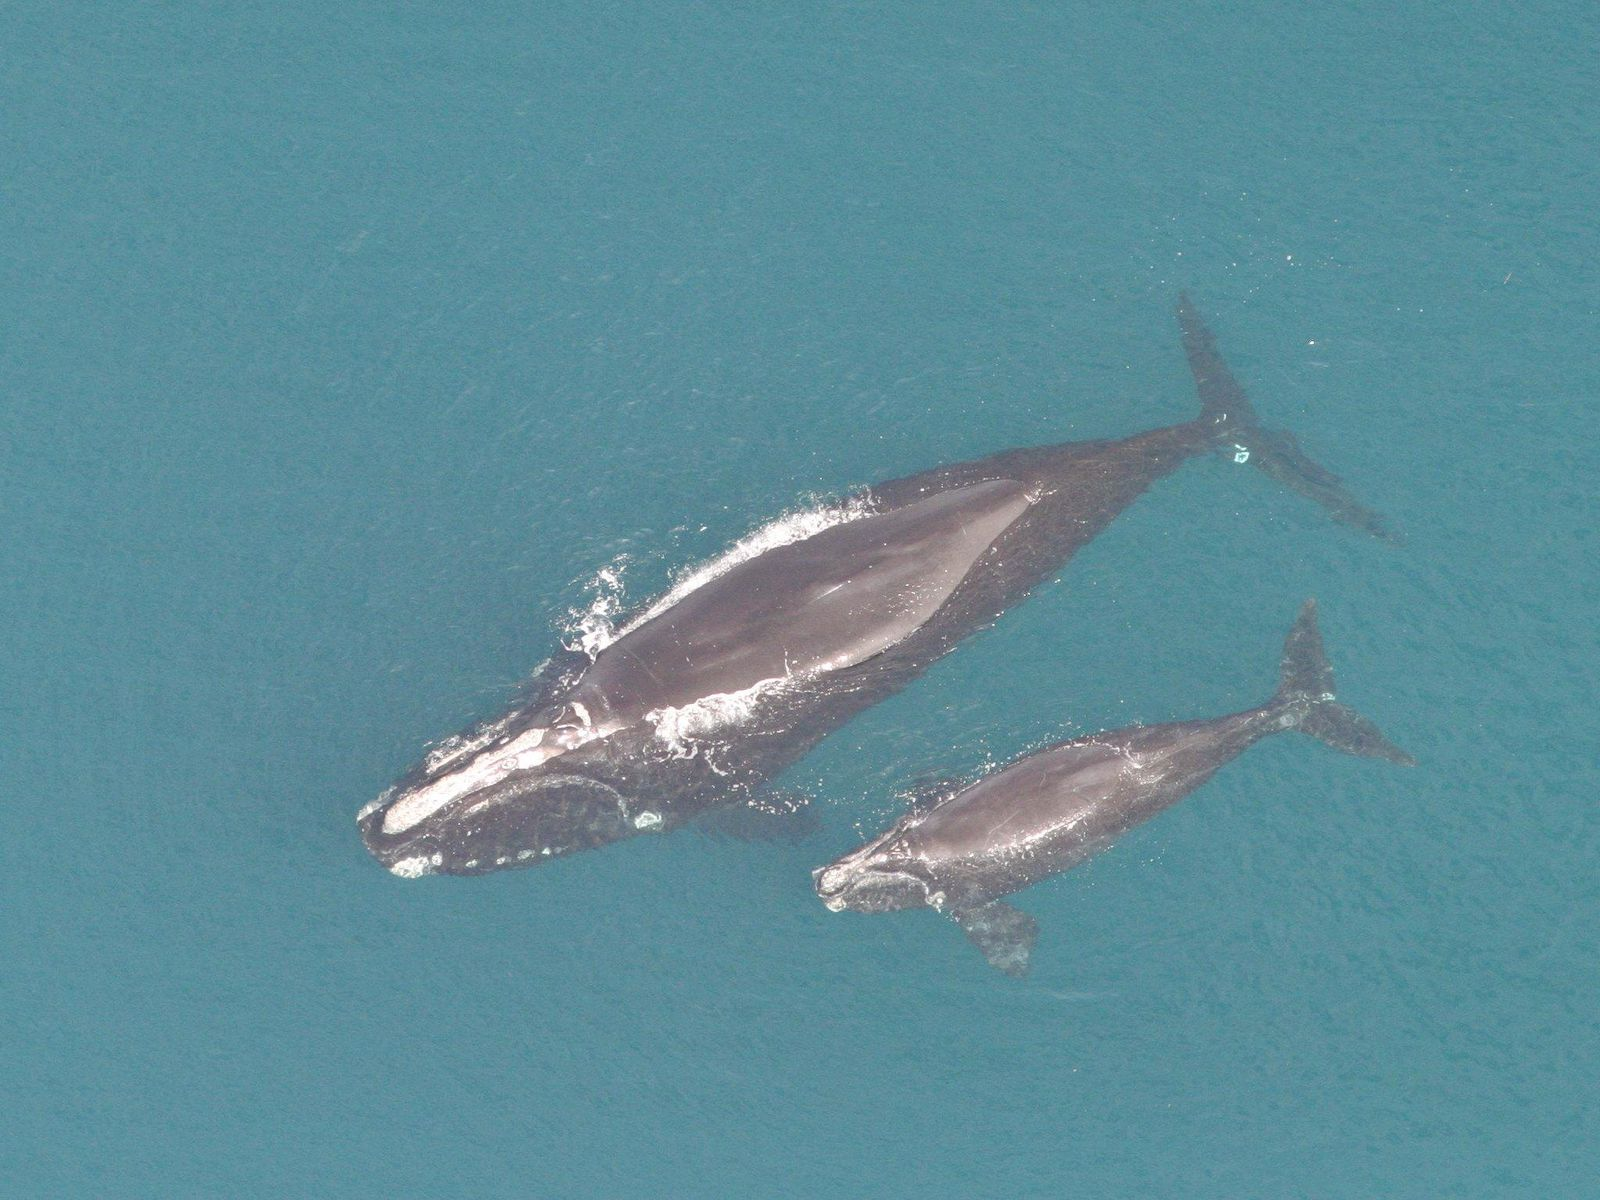 Biologists Celebrate the Births of Two Critically Endangered North Atlantic Right Whale Calves